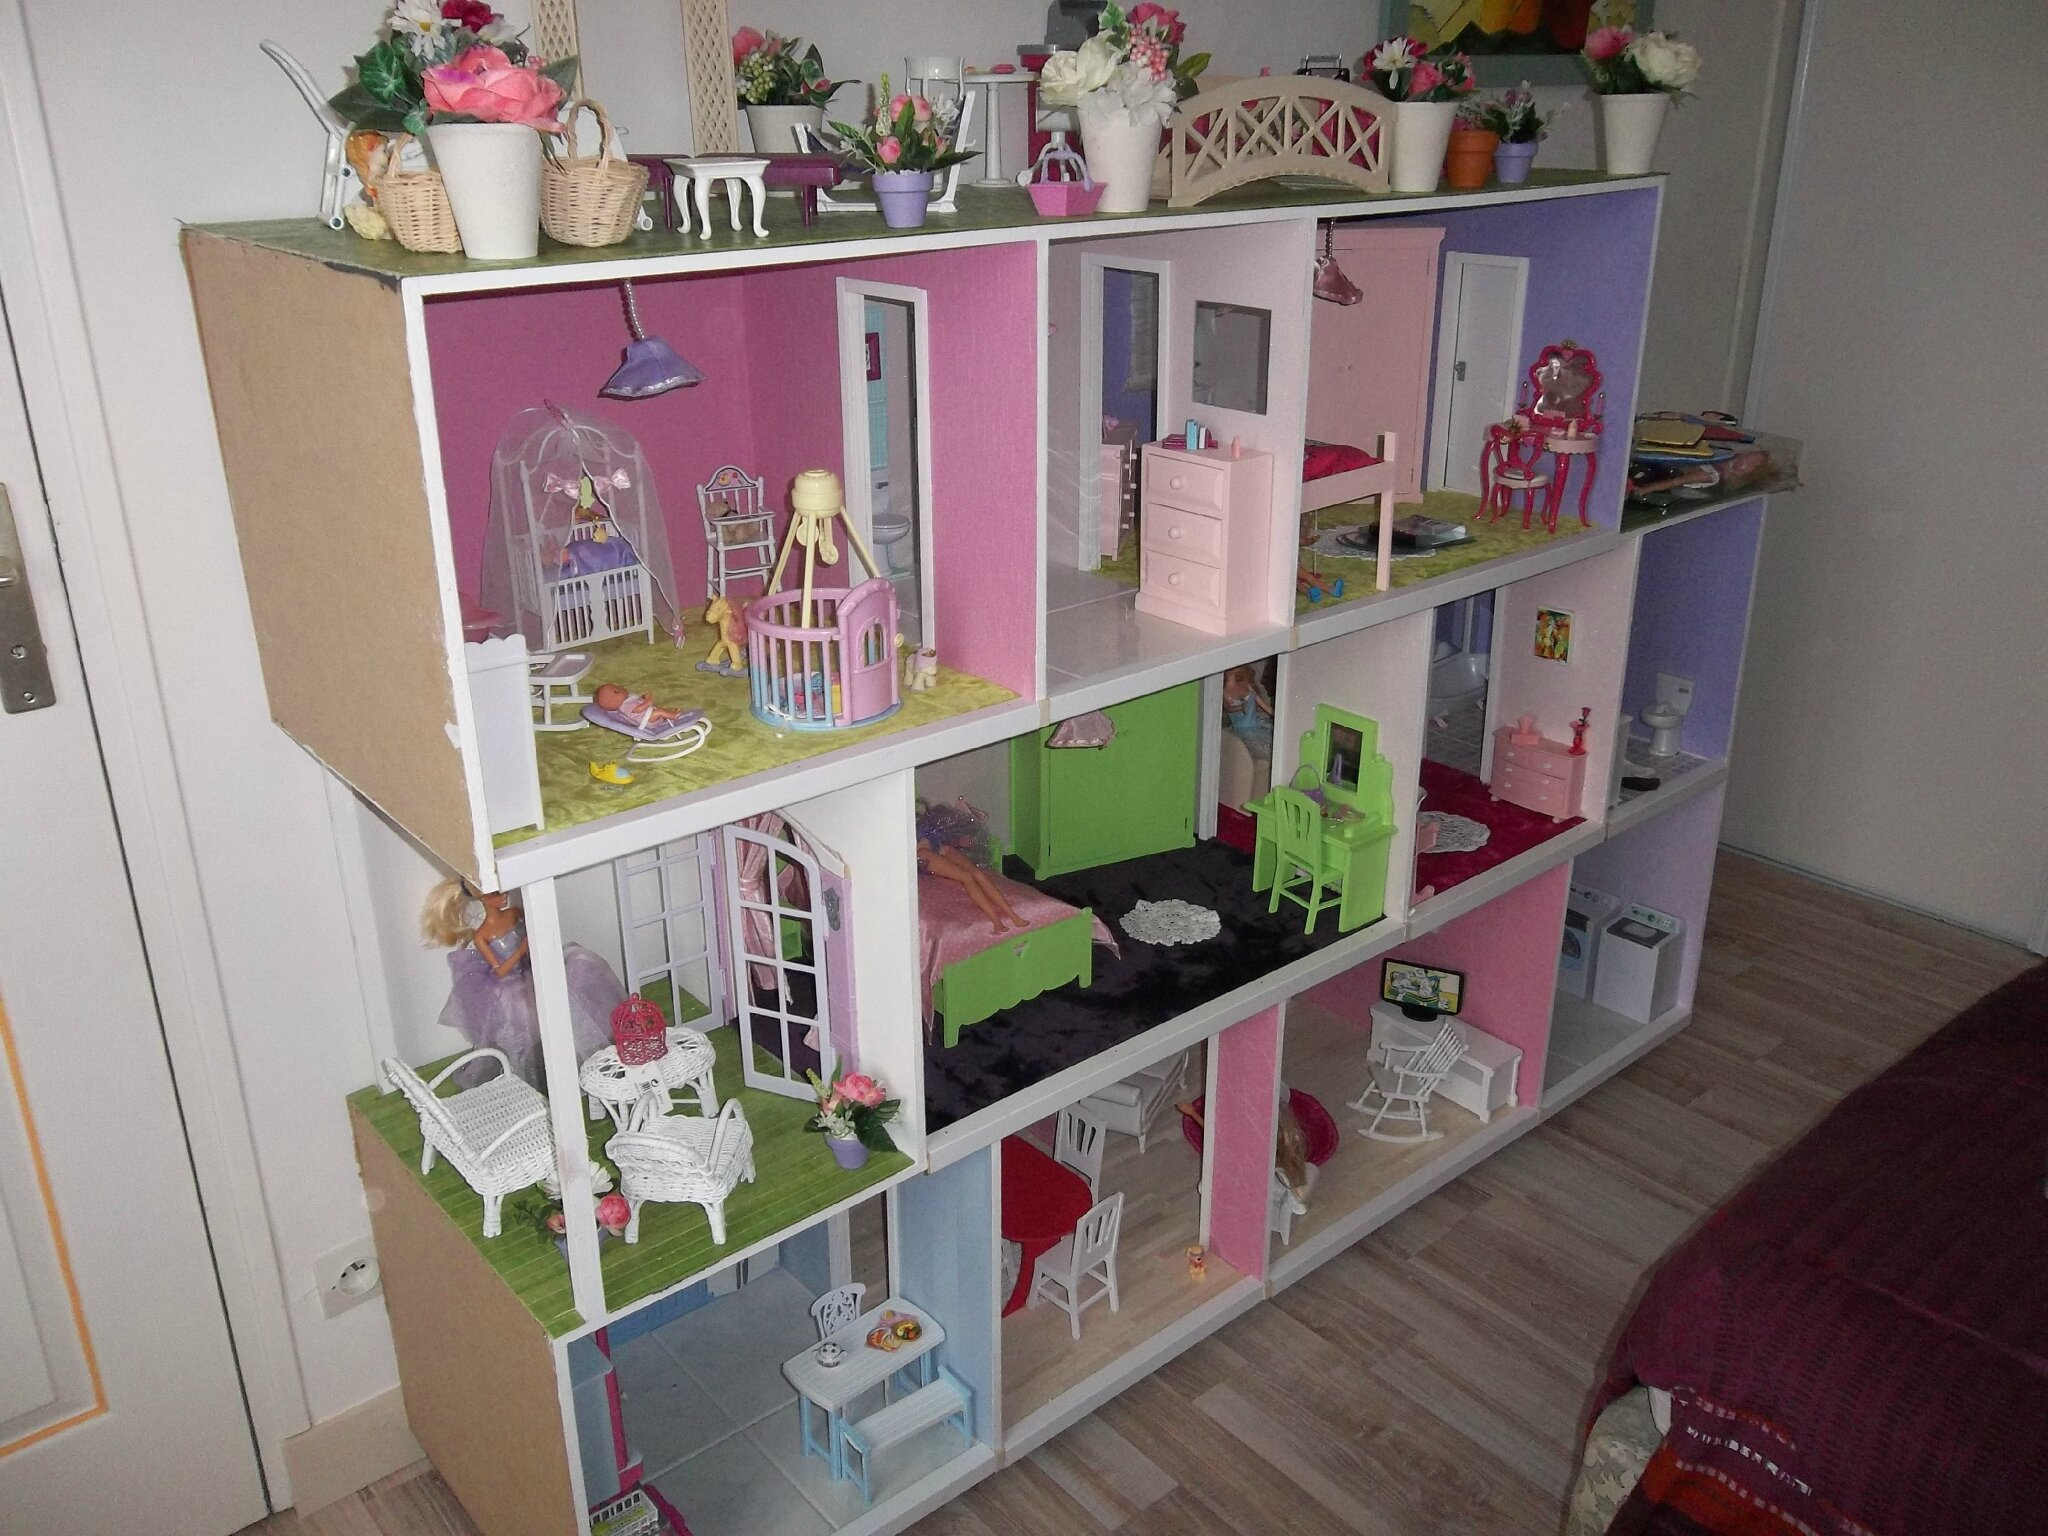 maisons pour manon et marion construction de maisons de poup e barbie. Black Bedroom Furniture Sets. Home Design Ideas